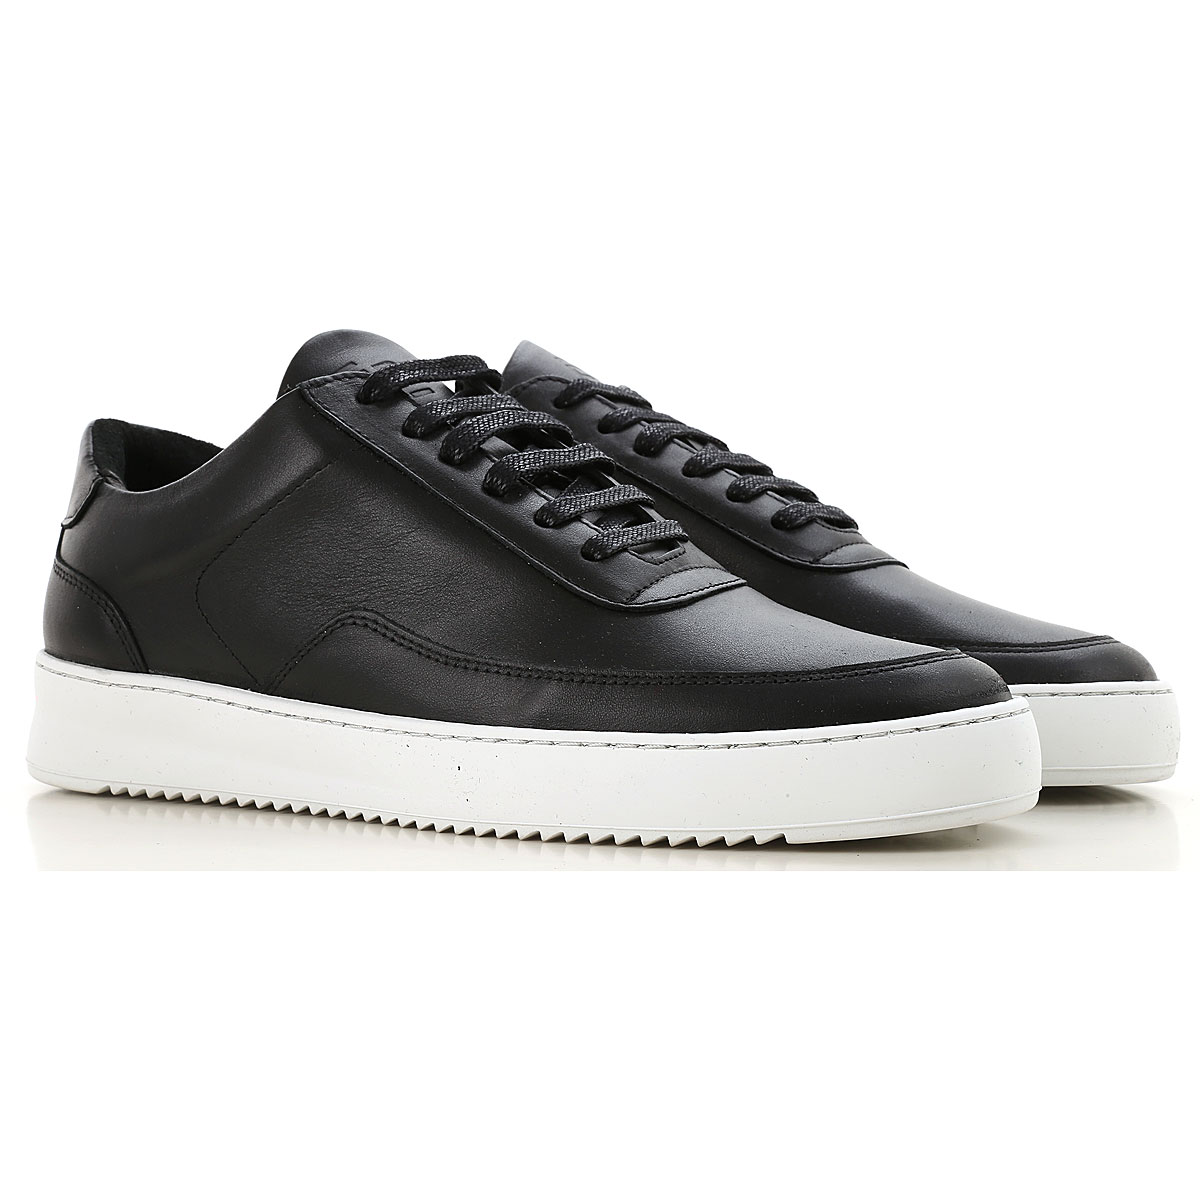 Image of Filling Pieces Sneakers for Men, Black, Leather, 2017, 10 10.5 7.5 8 9